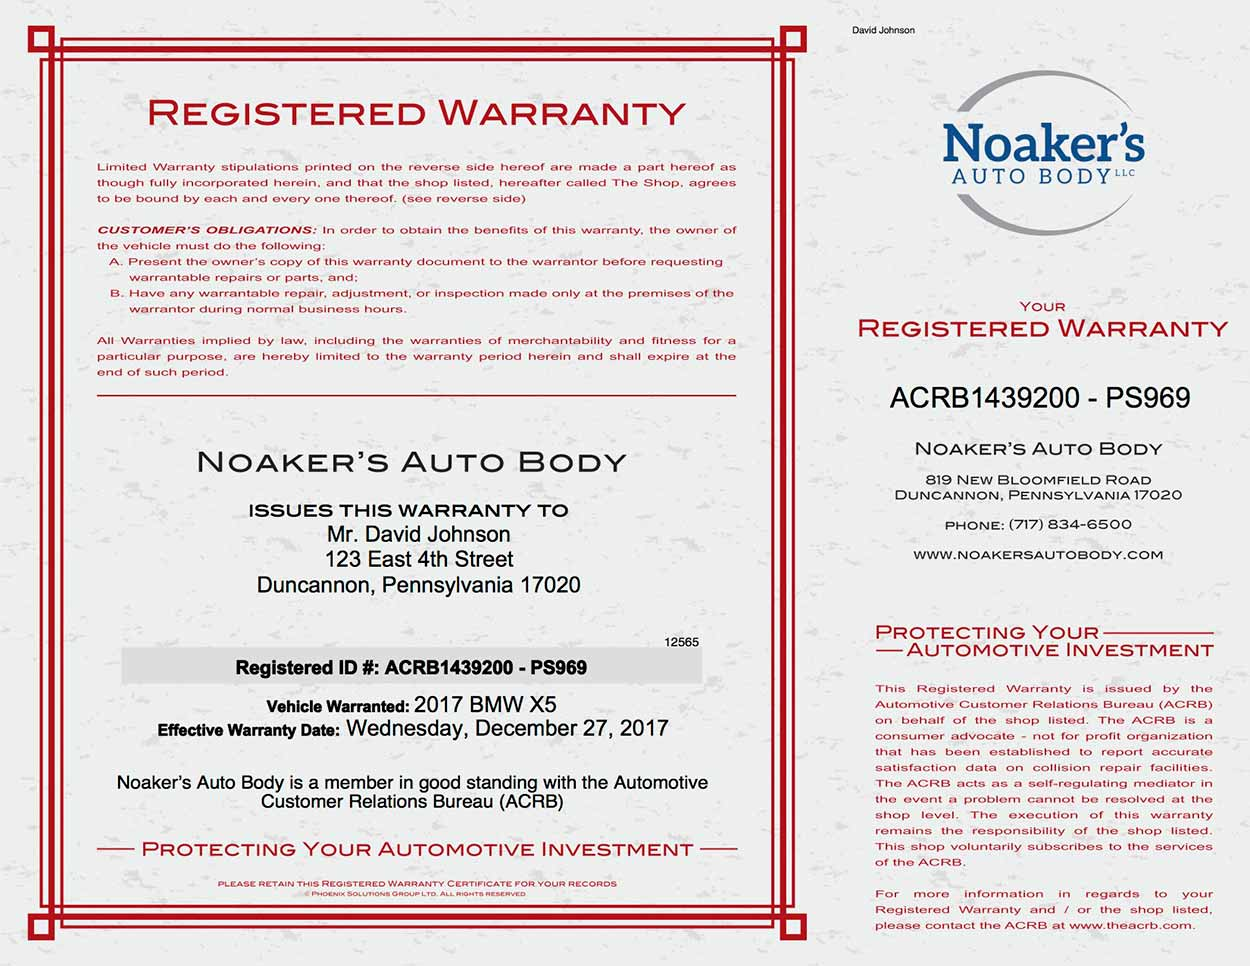 Noaker's Collision Warranty